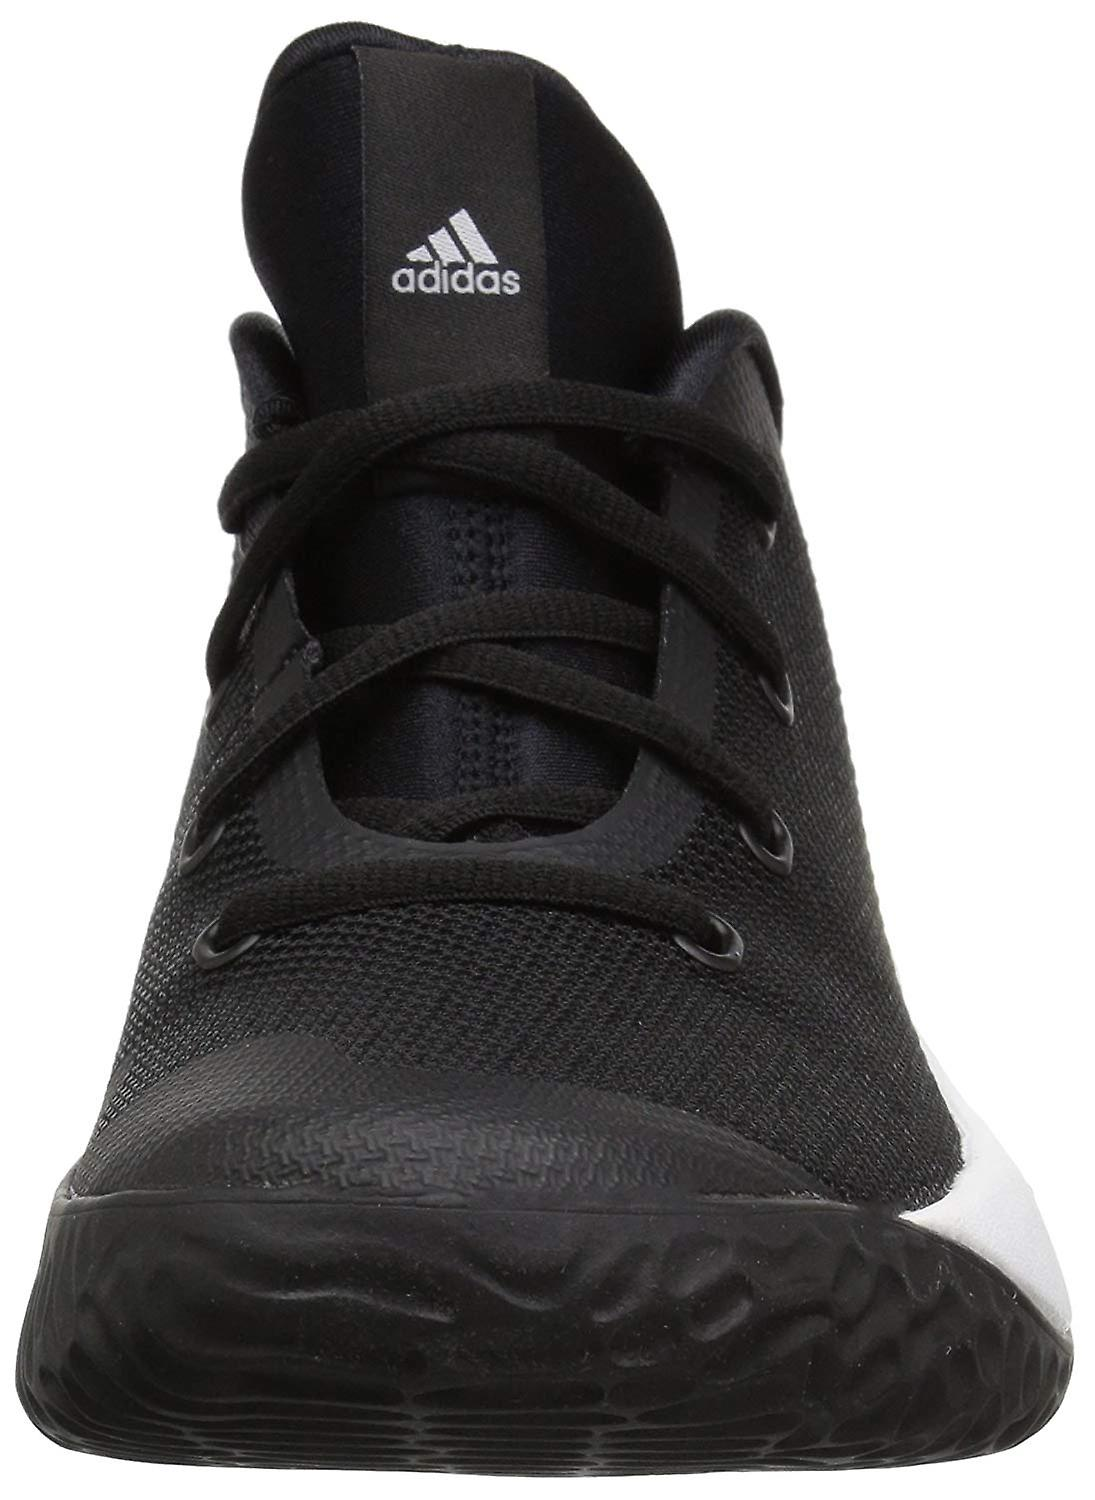 Adidas Girls rise up 2 k Hight Top Lace Up Walking Shoes